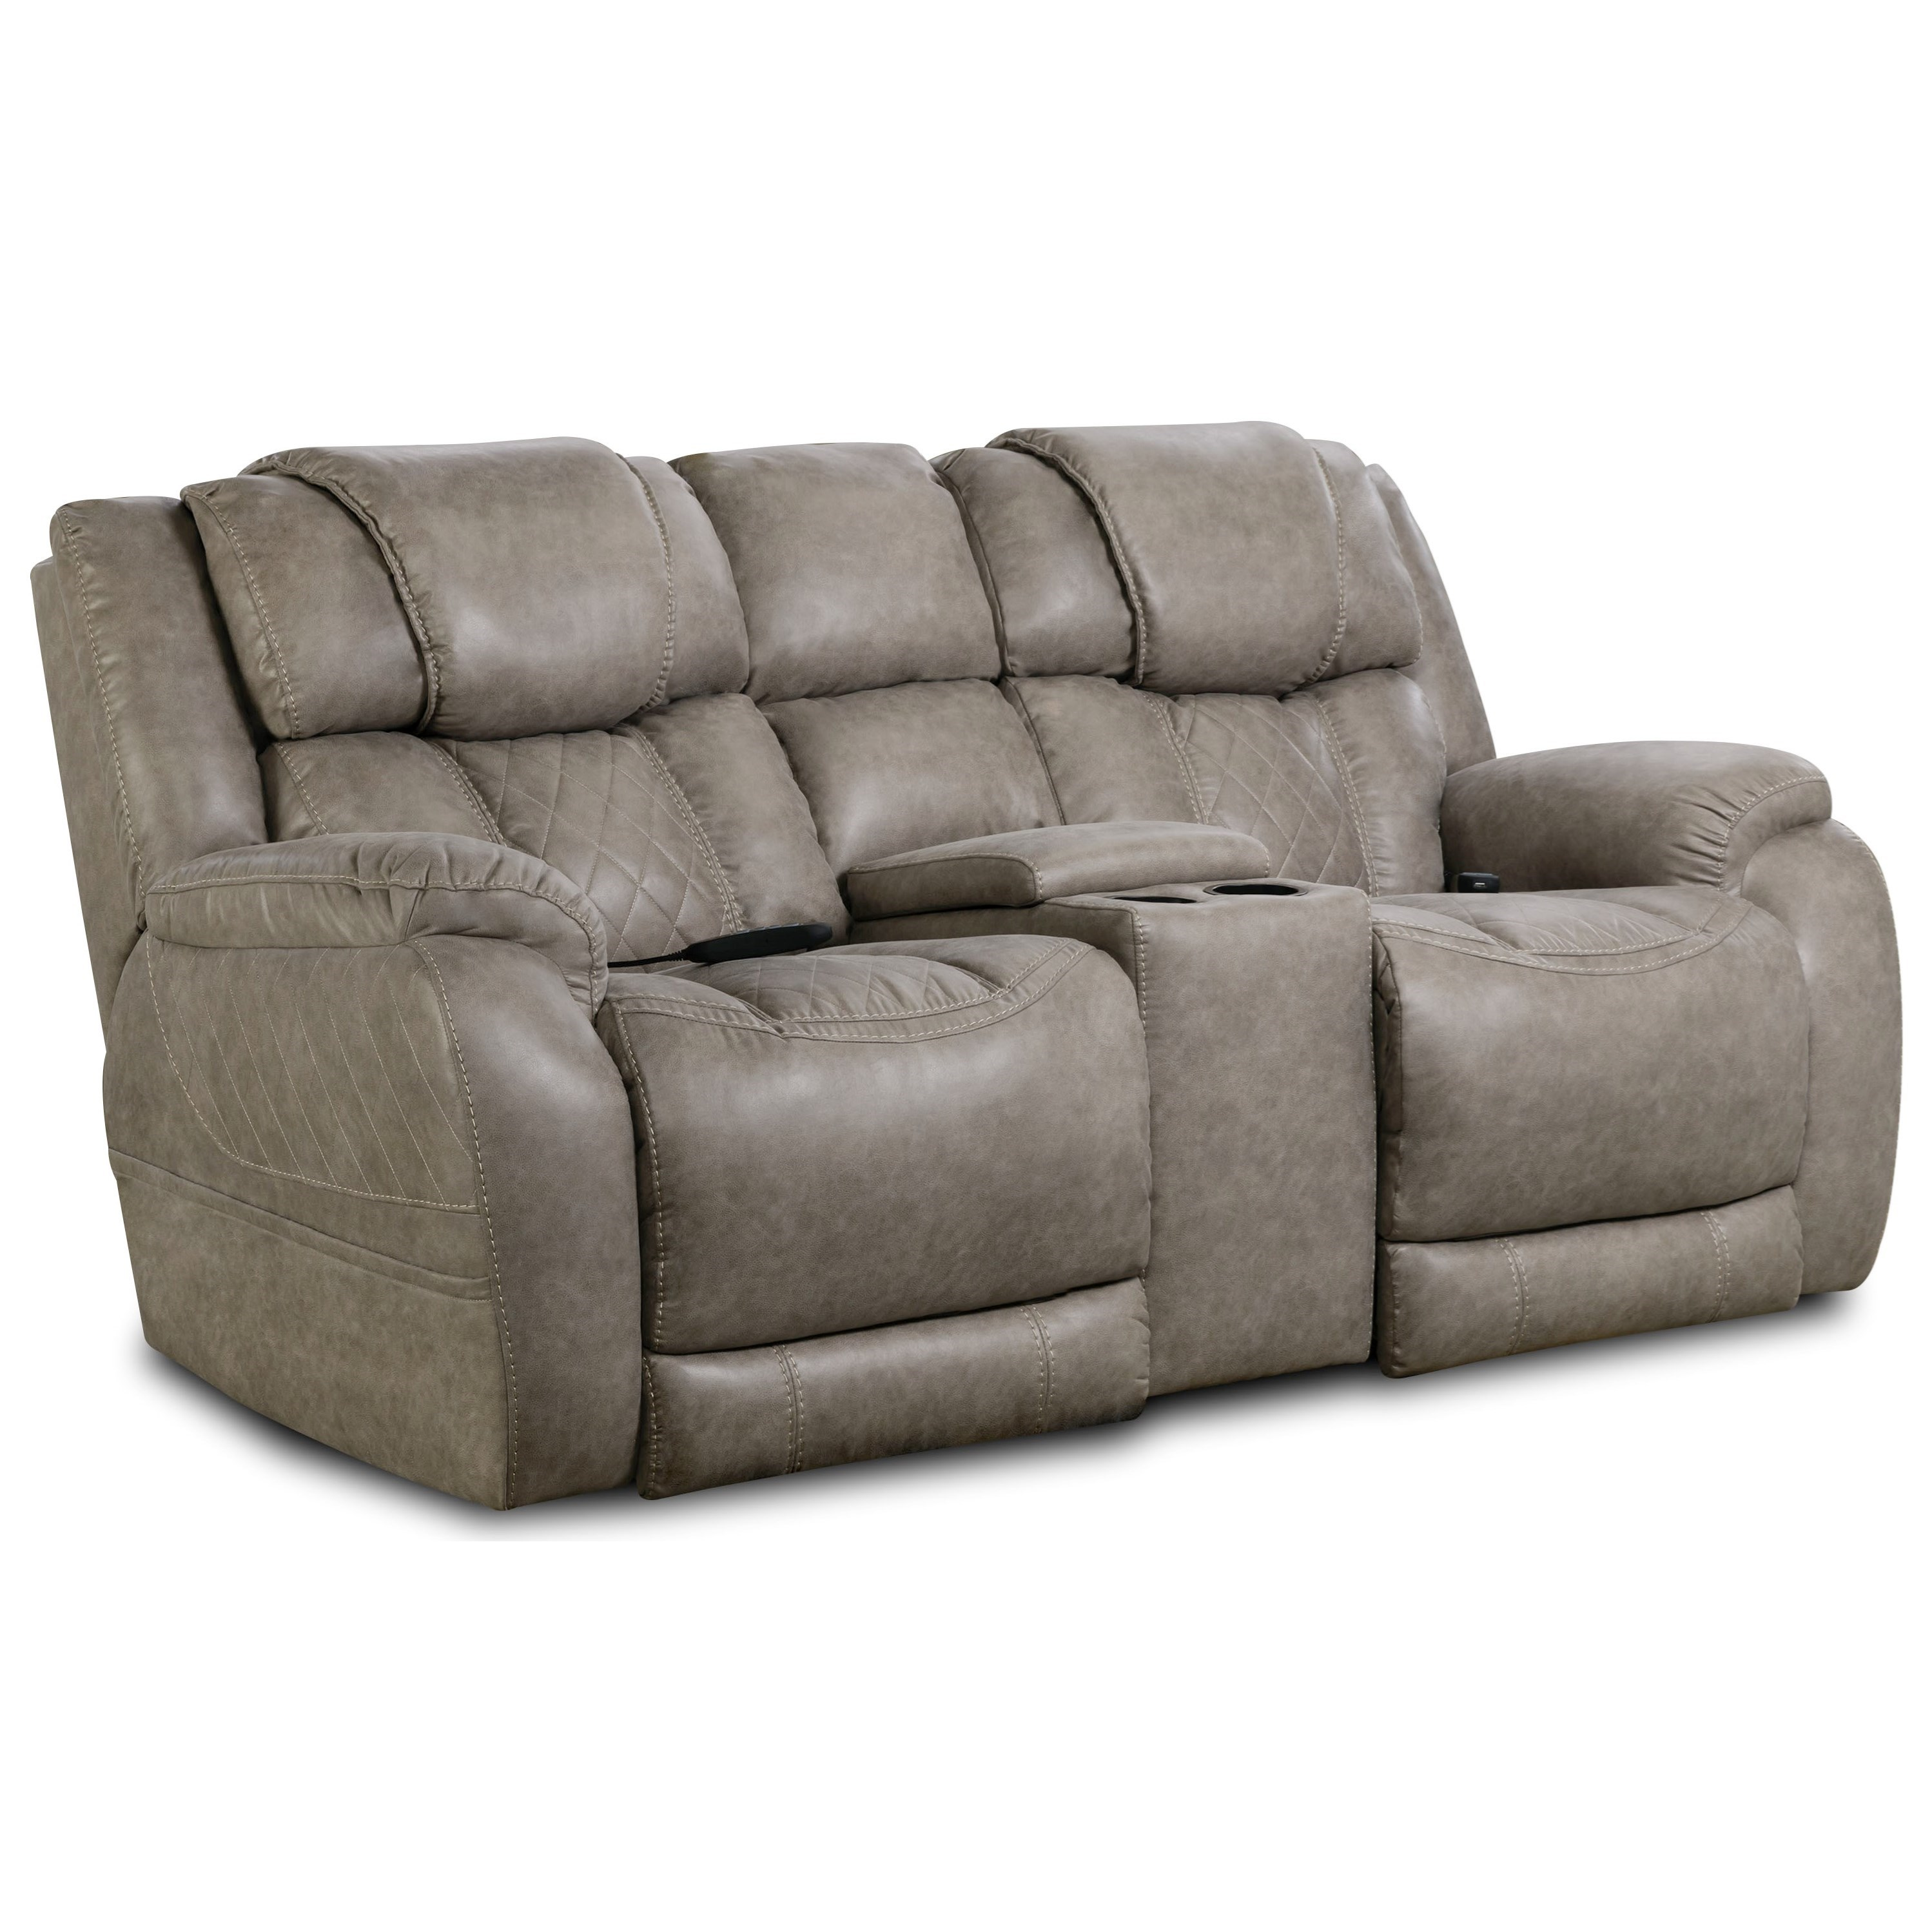 174 Power Console Loveseat by HomeStretch at Van Hill Furniture